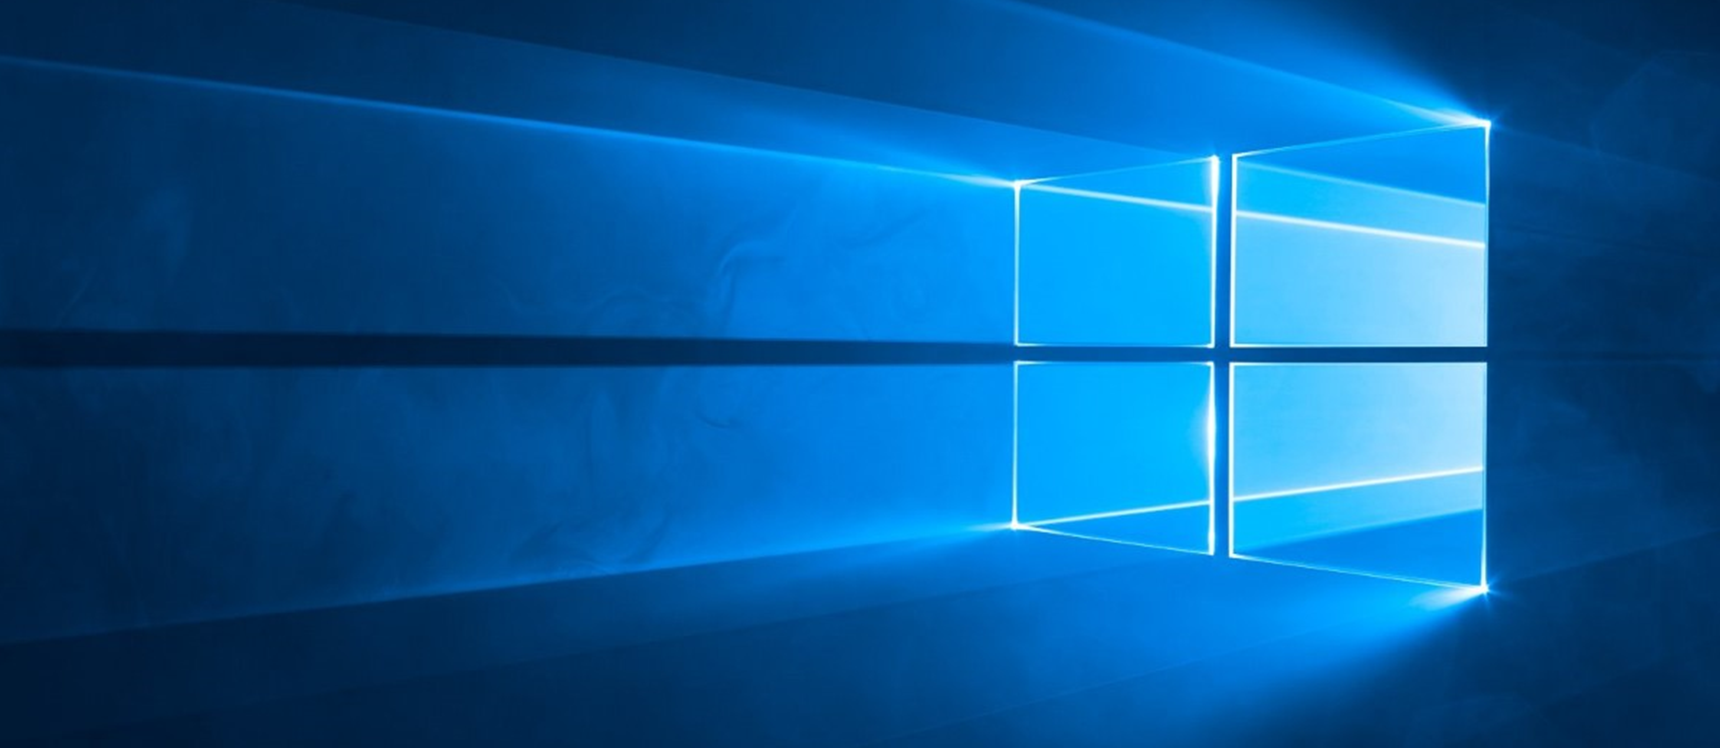 image of computer with Windows 10